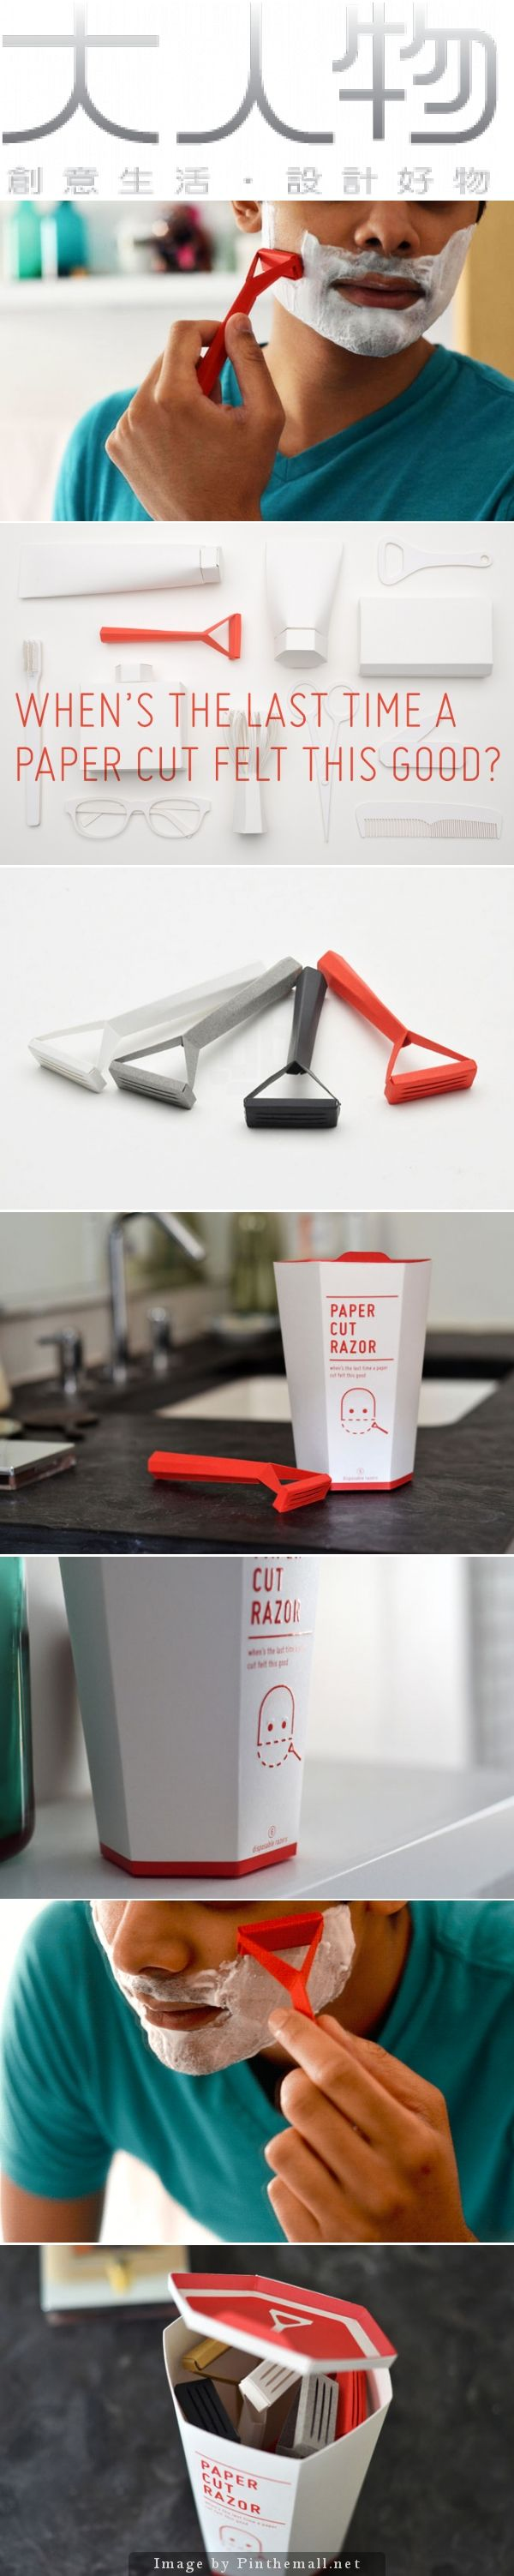 Cool idea paper cut razor cut #packaging curated by Packaging Diva PD created via http://daman.cool3c.com/node/81984